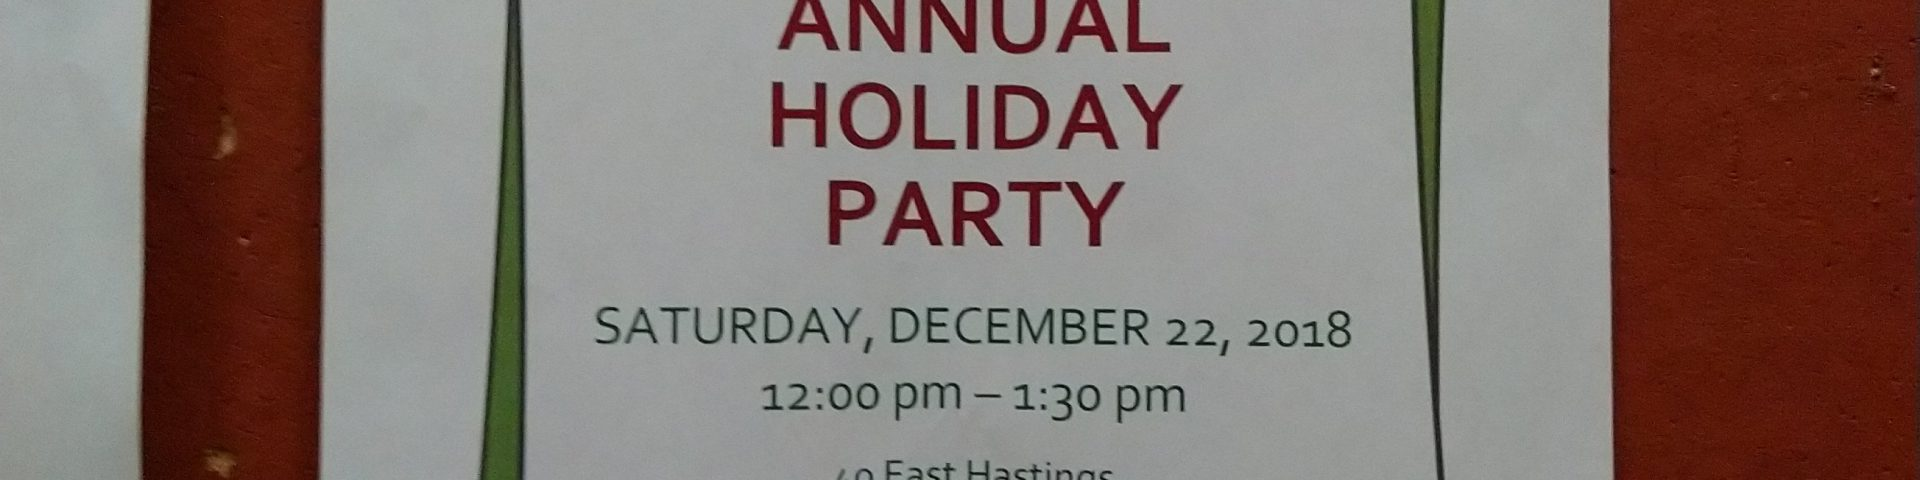 NHS ANNUAL HOLIDAY PARTY